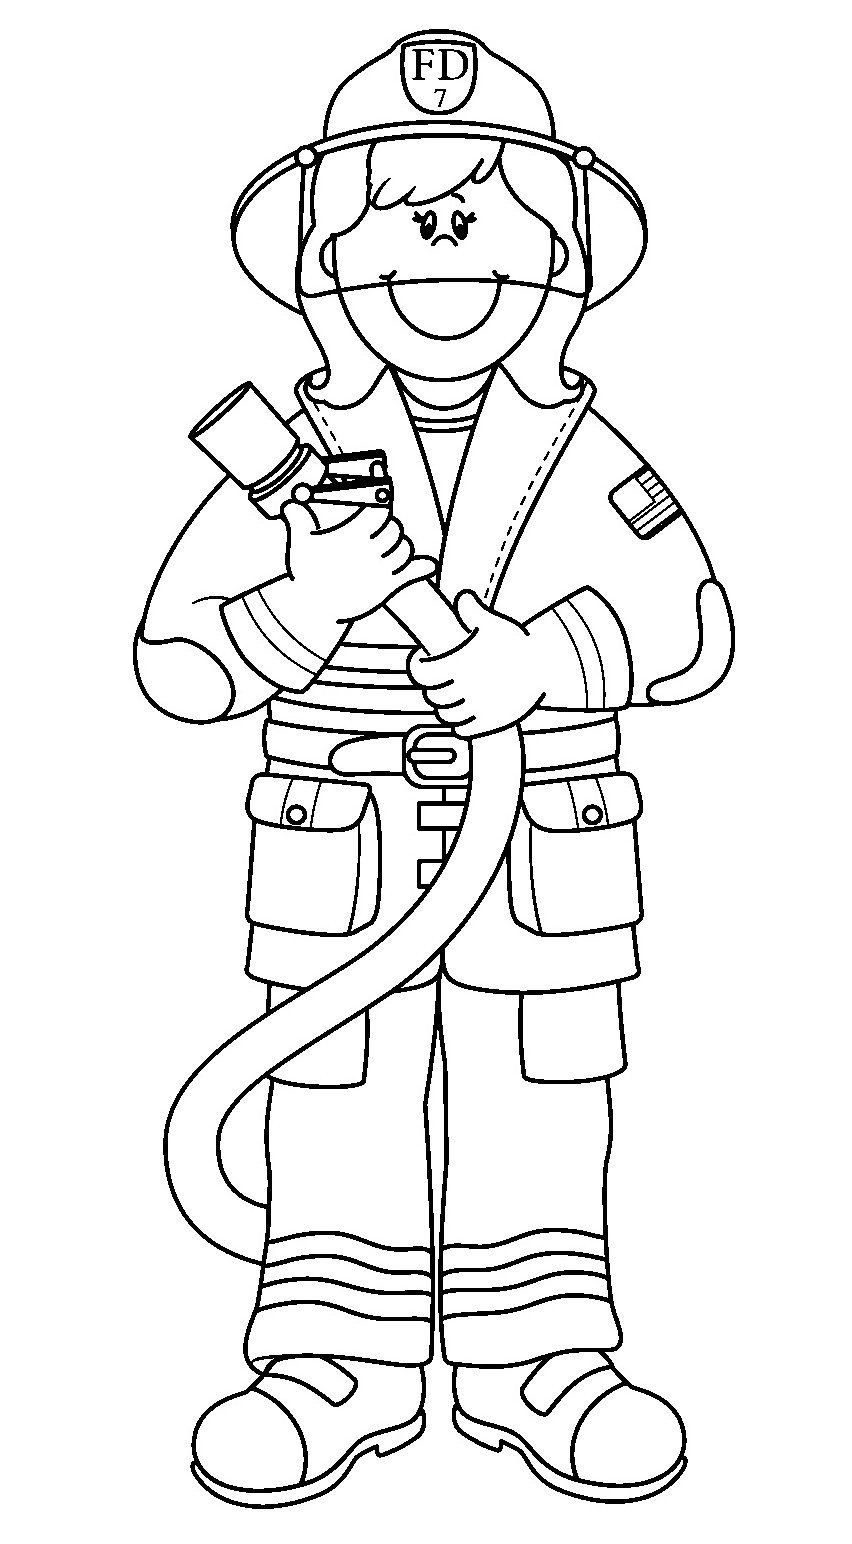 Firefighter Coloring Pages For Preschoolers Printable Fireman Coloring Pages Firefighter Clipart Cartoon Coloring Pages Firefighter Crafts